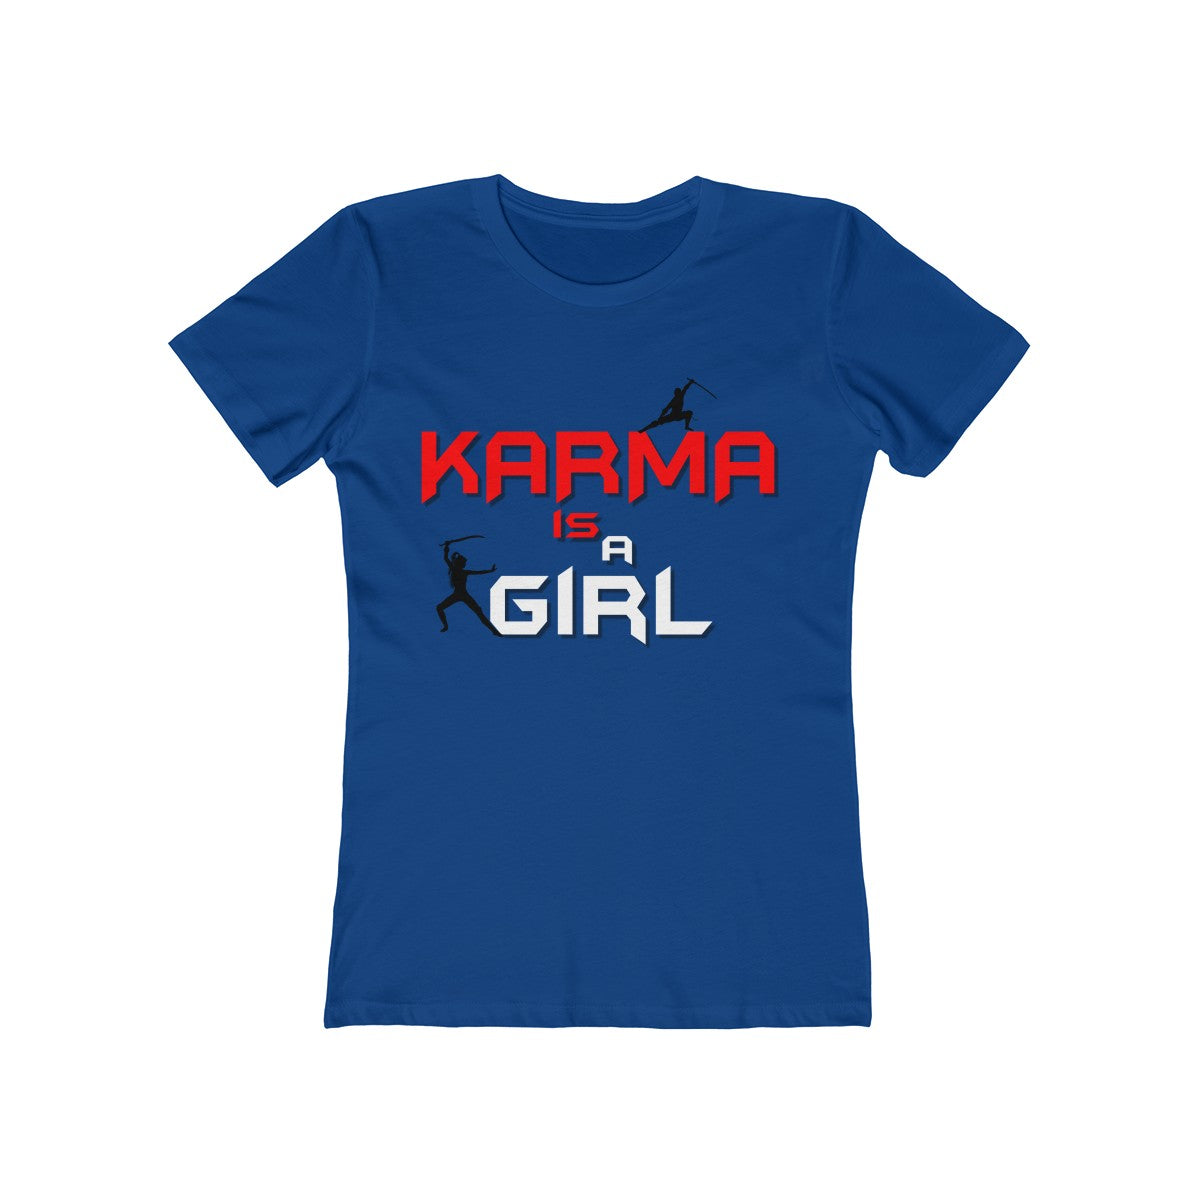 Women's The Boyfriend Tee - Karma X